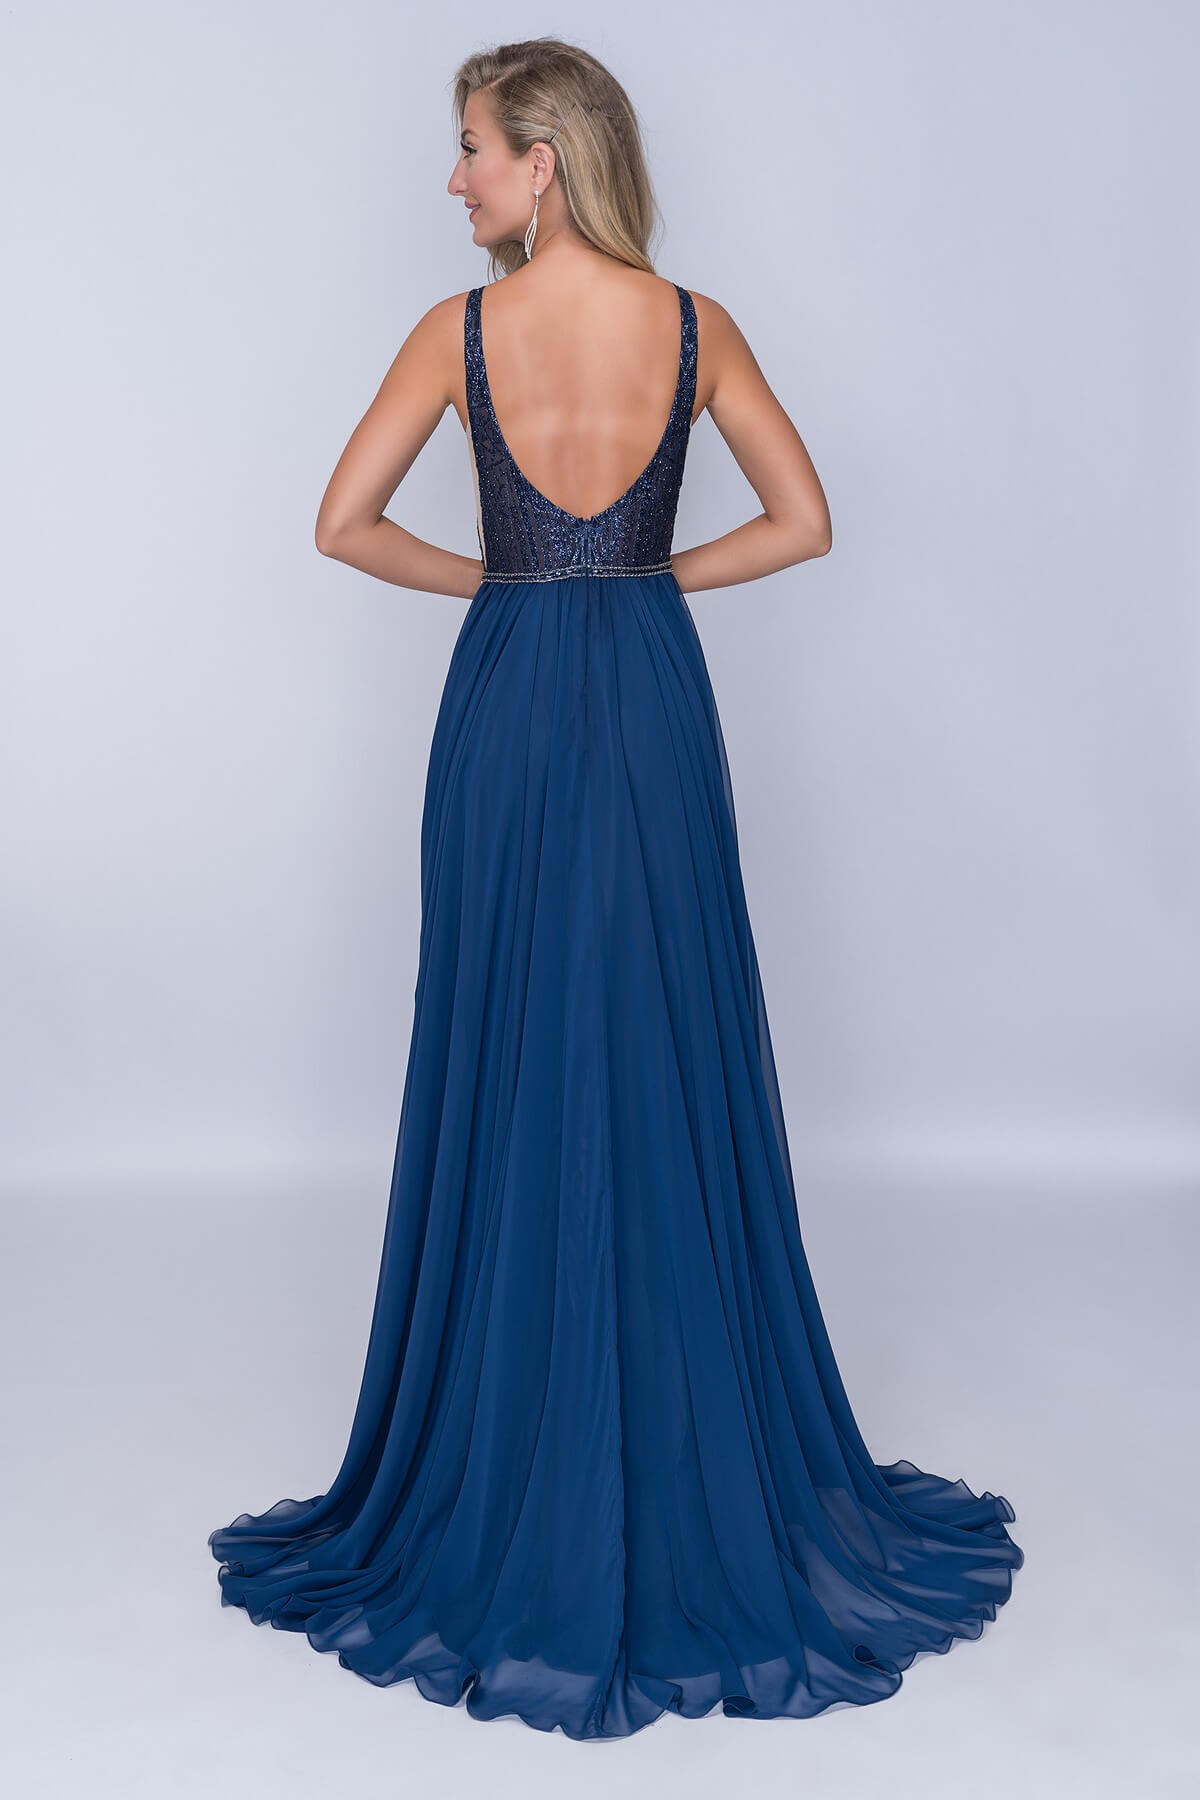 Nina Canacci Blue Size 4 Backless Tall Height Lace A-line Dress on Queenly